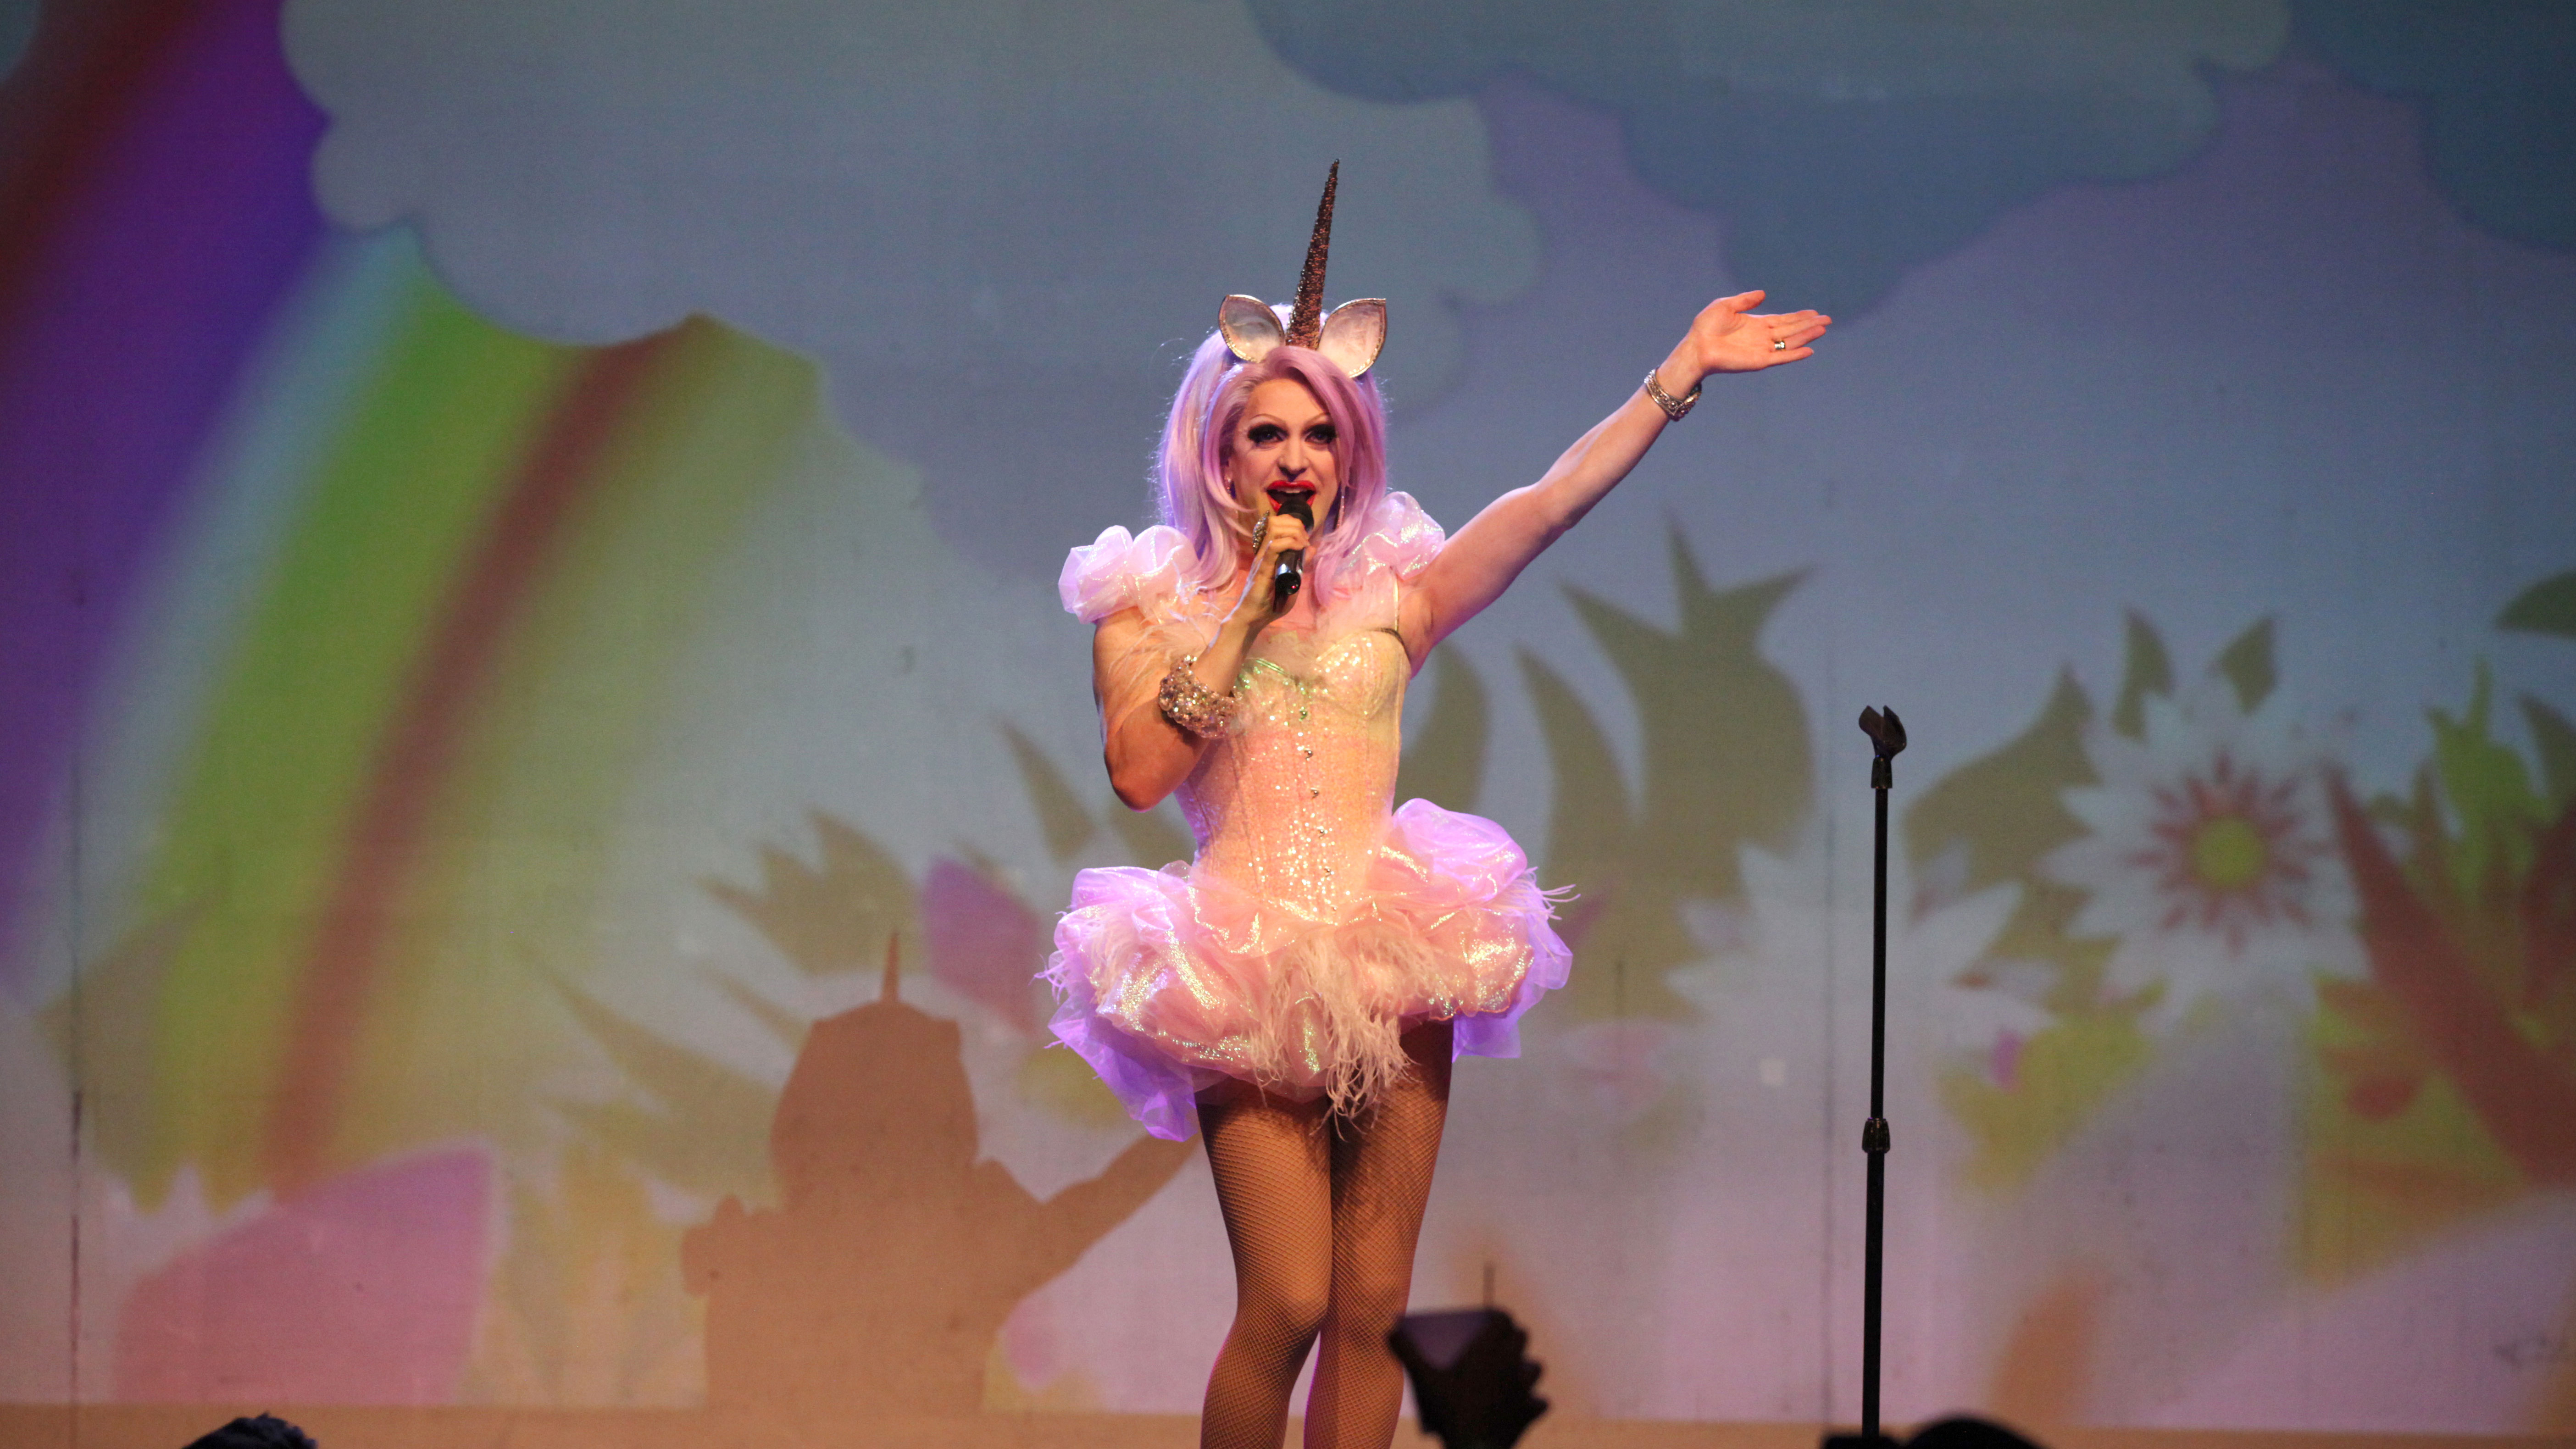 Pandora Boxx performing at Center Stage Theatre on Tuesday, Apr. 22, 2014, in Atlanta.